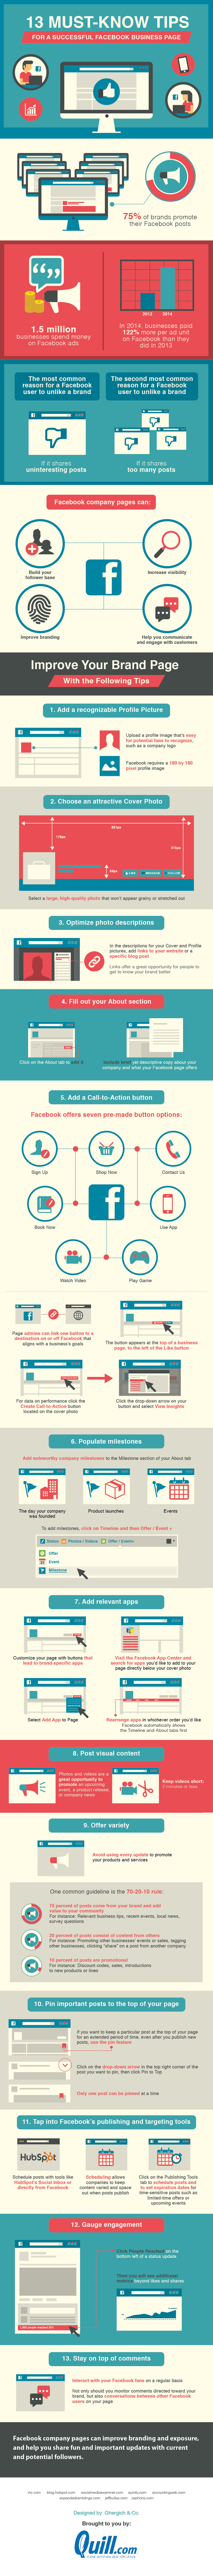 13 Must-Know Tips For a Successful Facebook Business Page - infographic